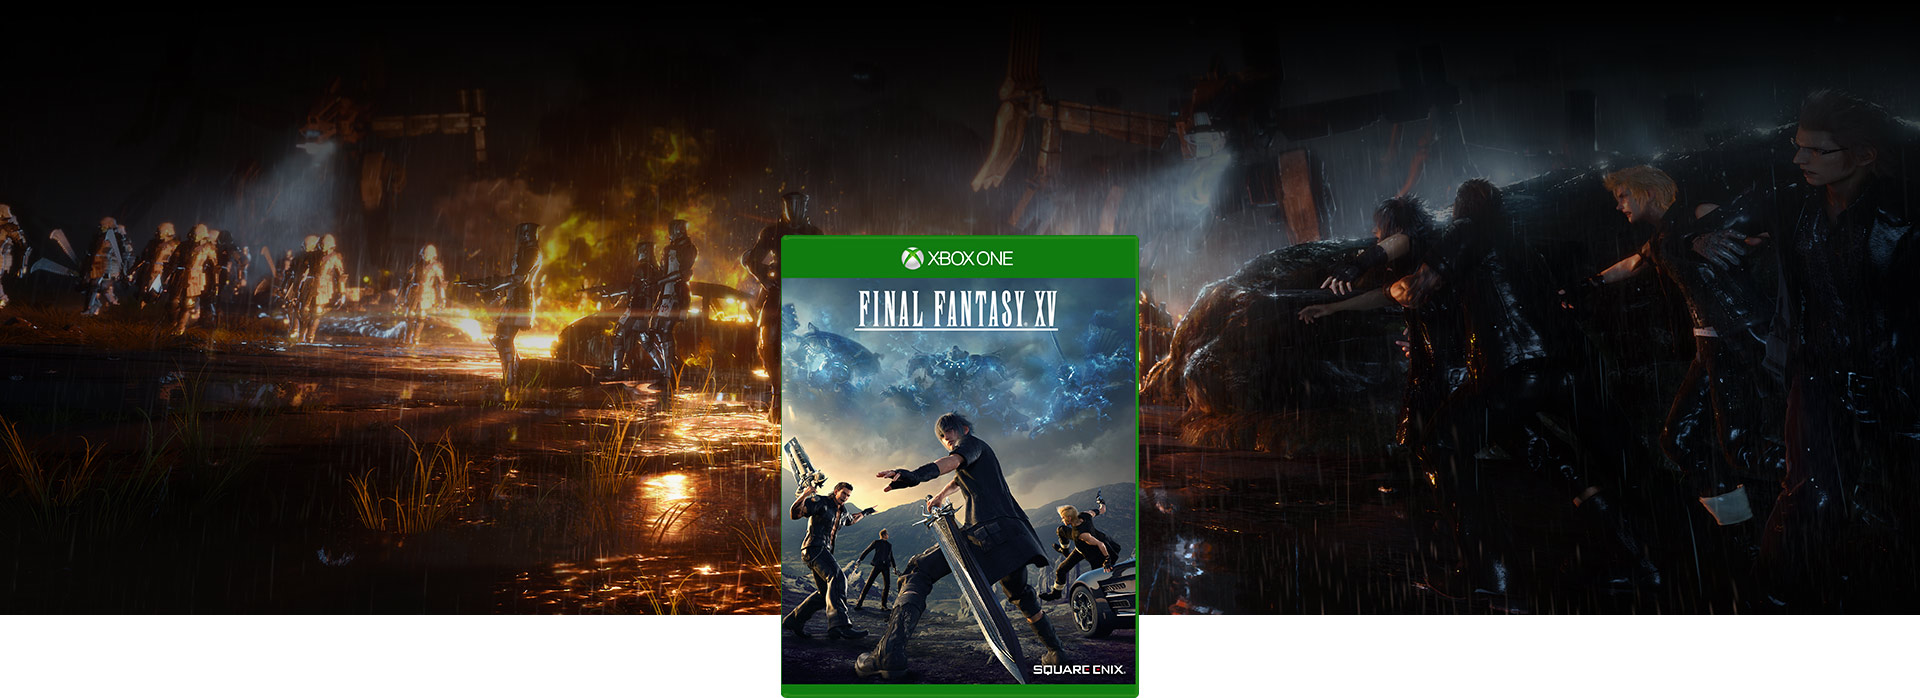 Final Fantasy XV game art and game boxshot